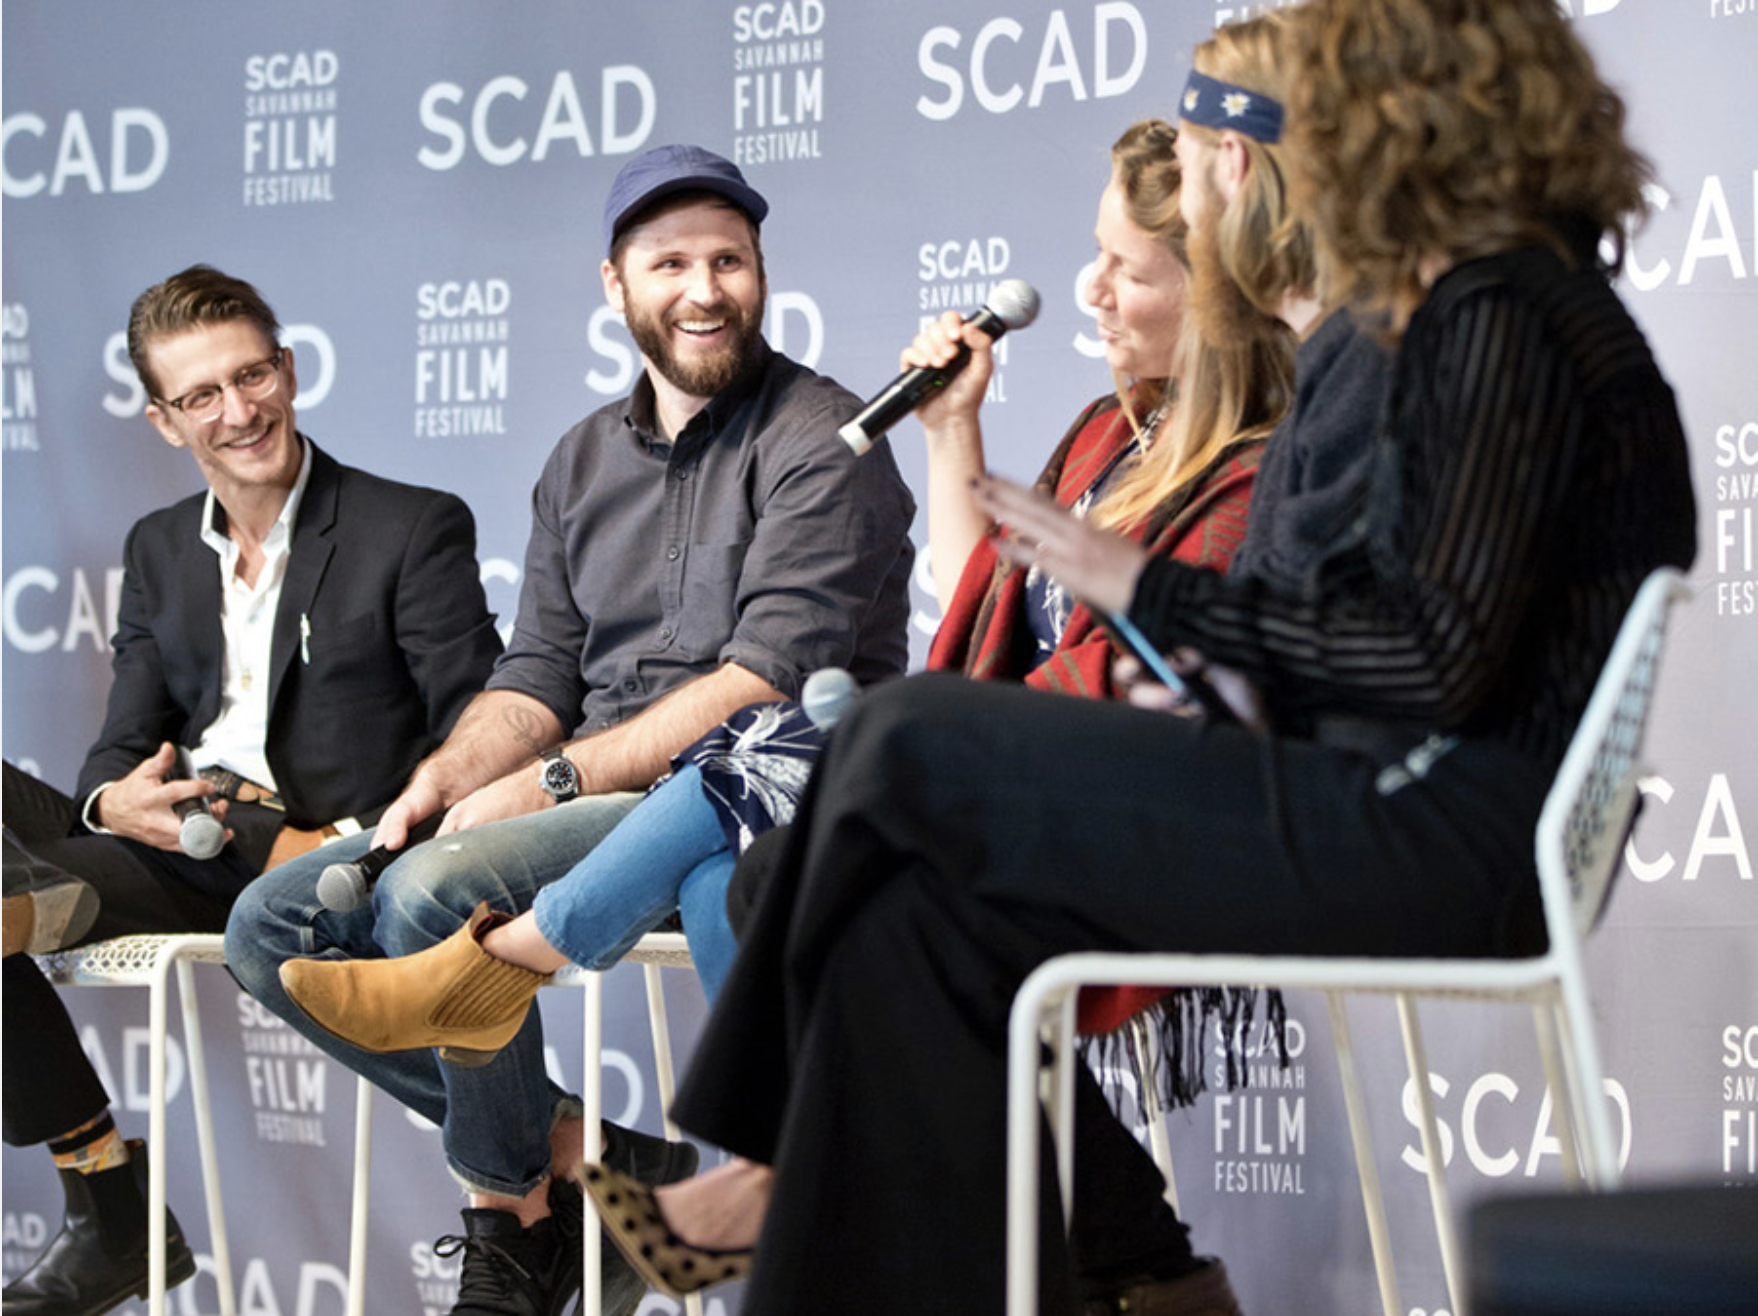 SCAD Film Festival taps Tom Musca